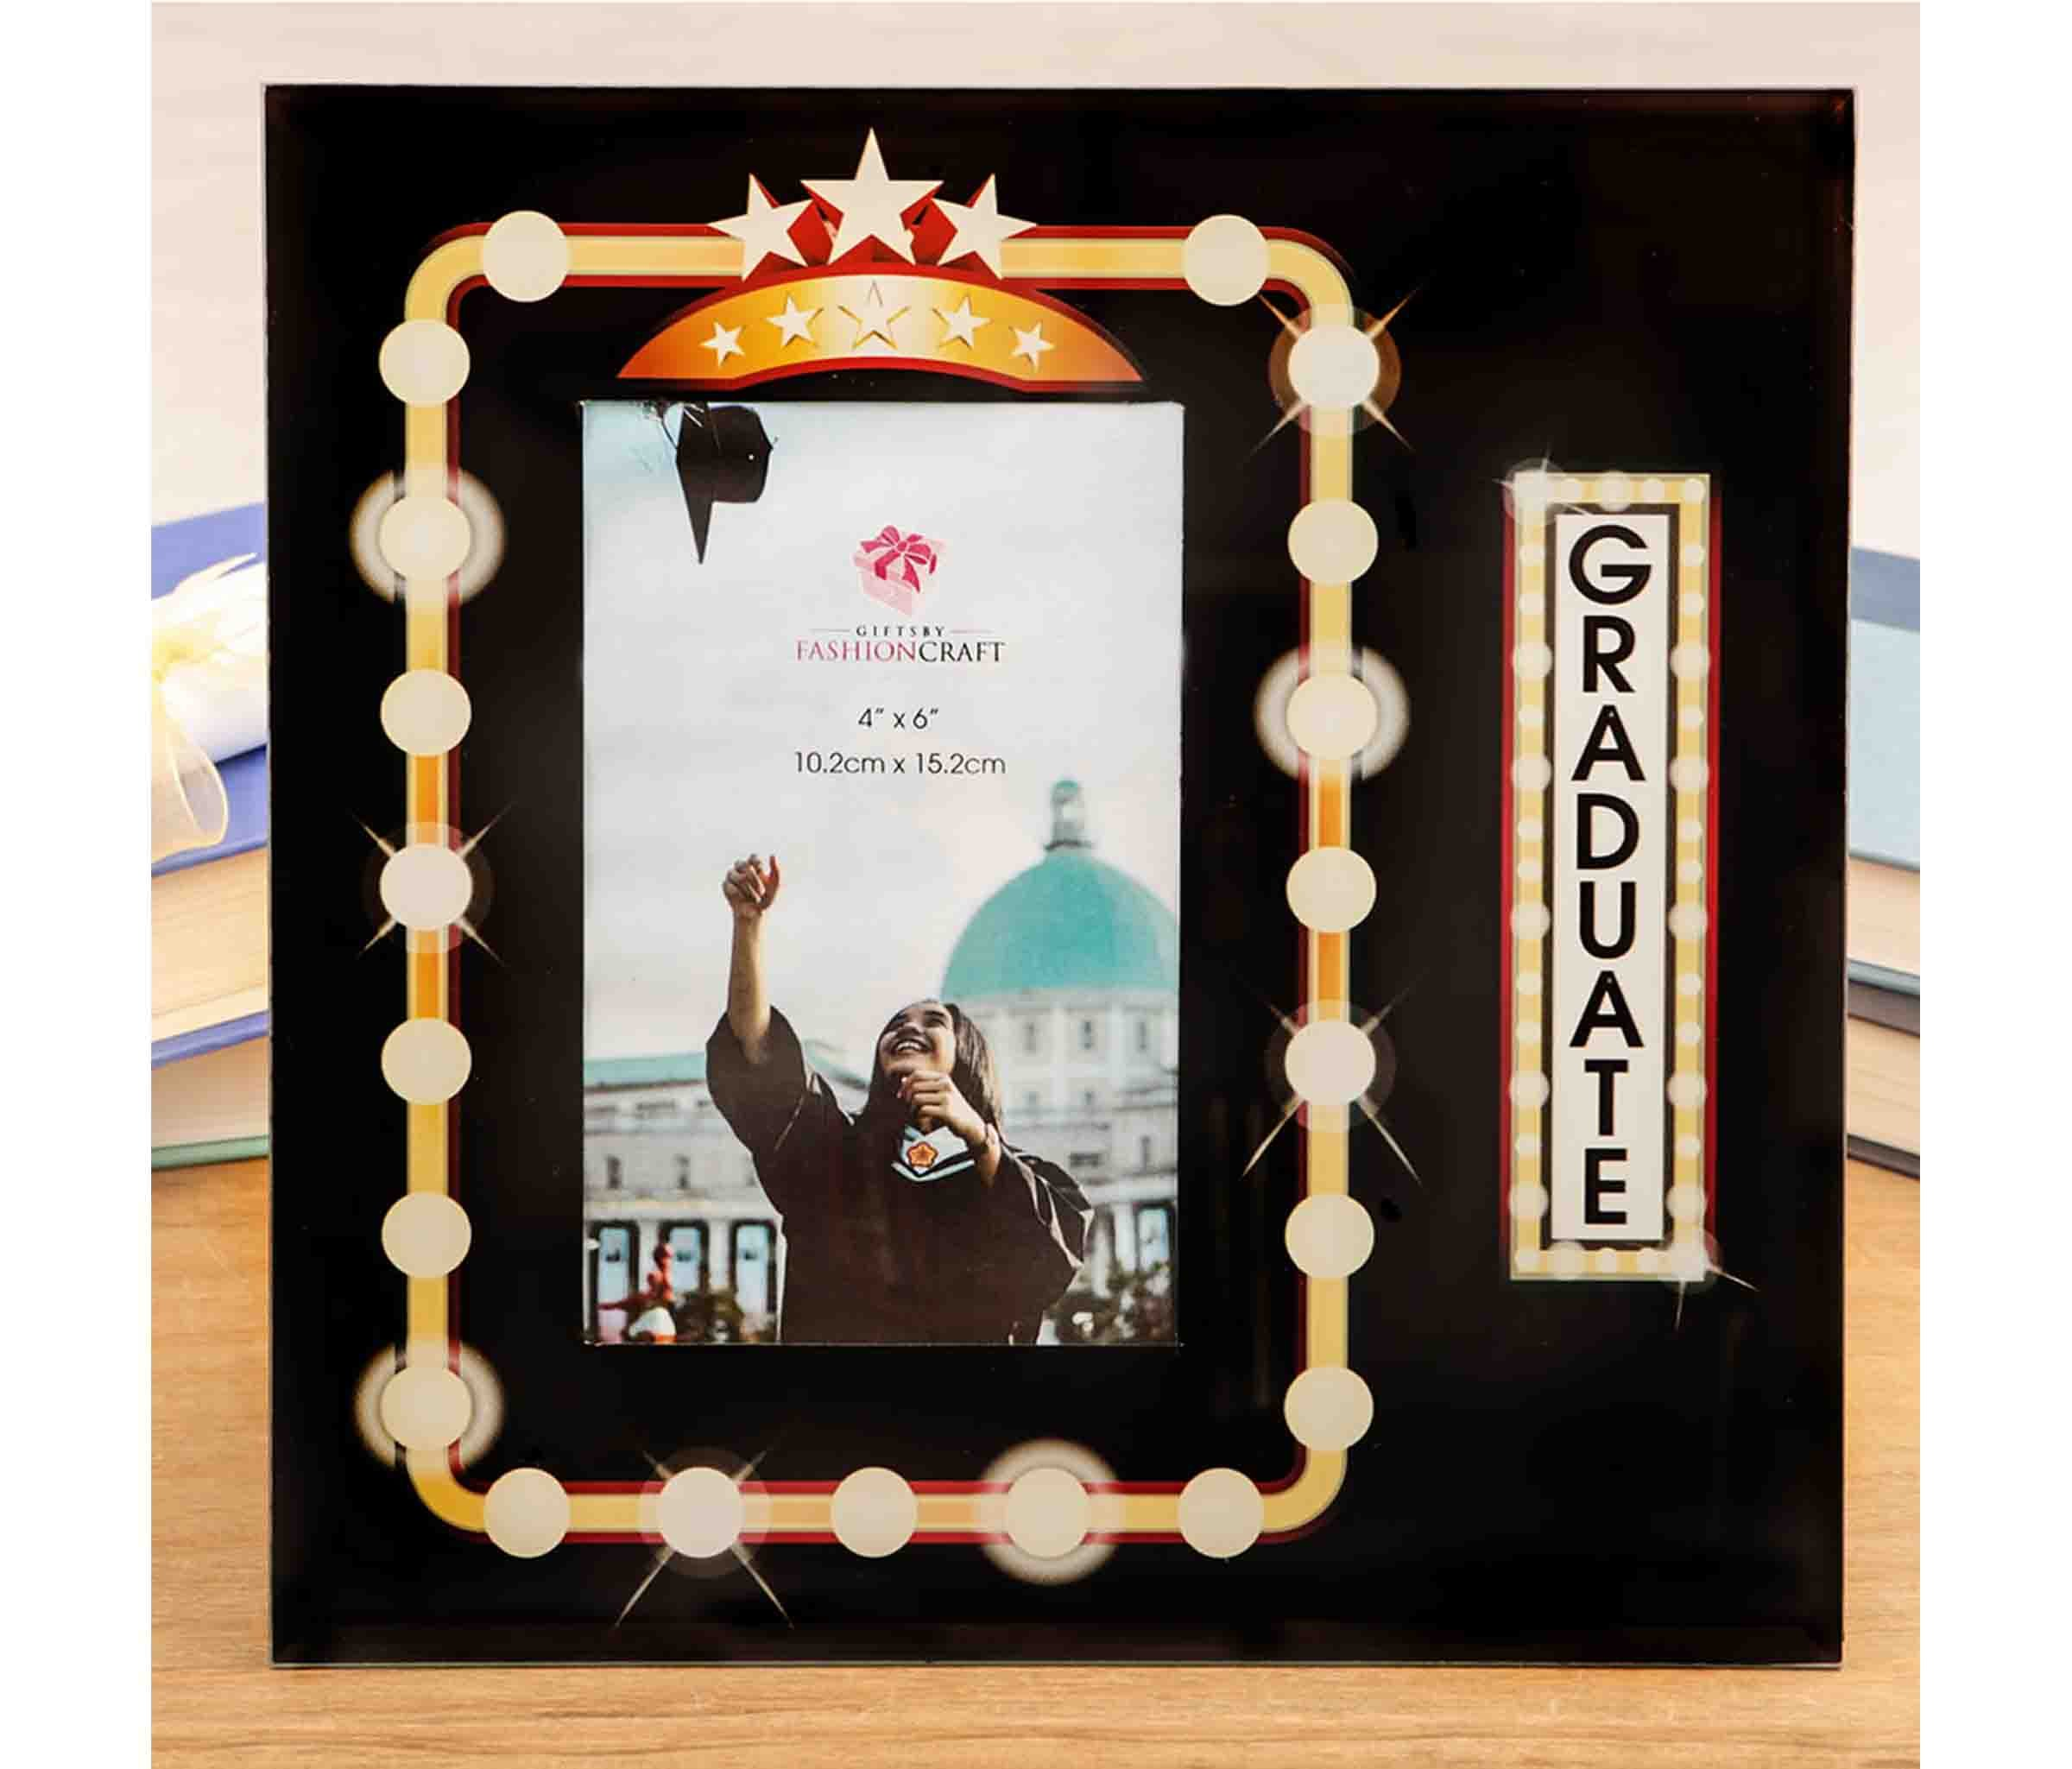 Mozlly Multipack - Fashioncraft Marquee Design Graduate 4x6 Glass Photo Frame - 9 x 9 inch - Velvet Back - Hollywood Style Lights and Stars - Home Decor Accents (Pack of 6)